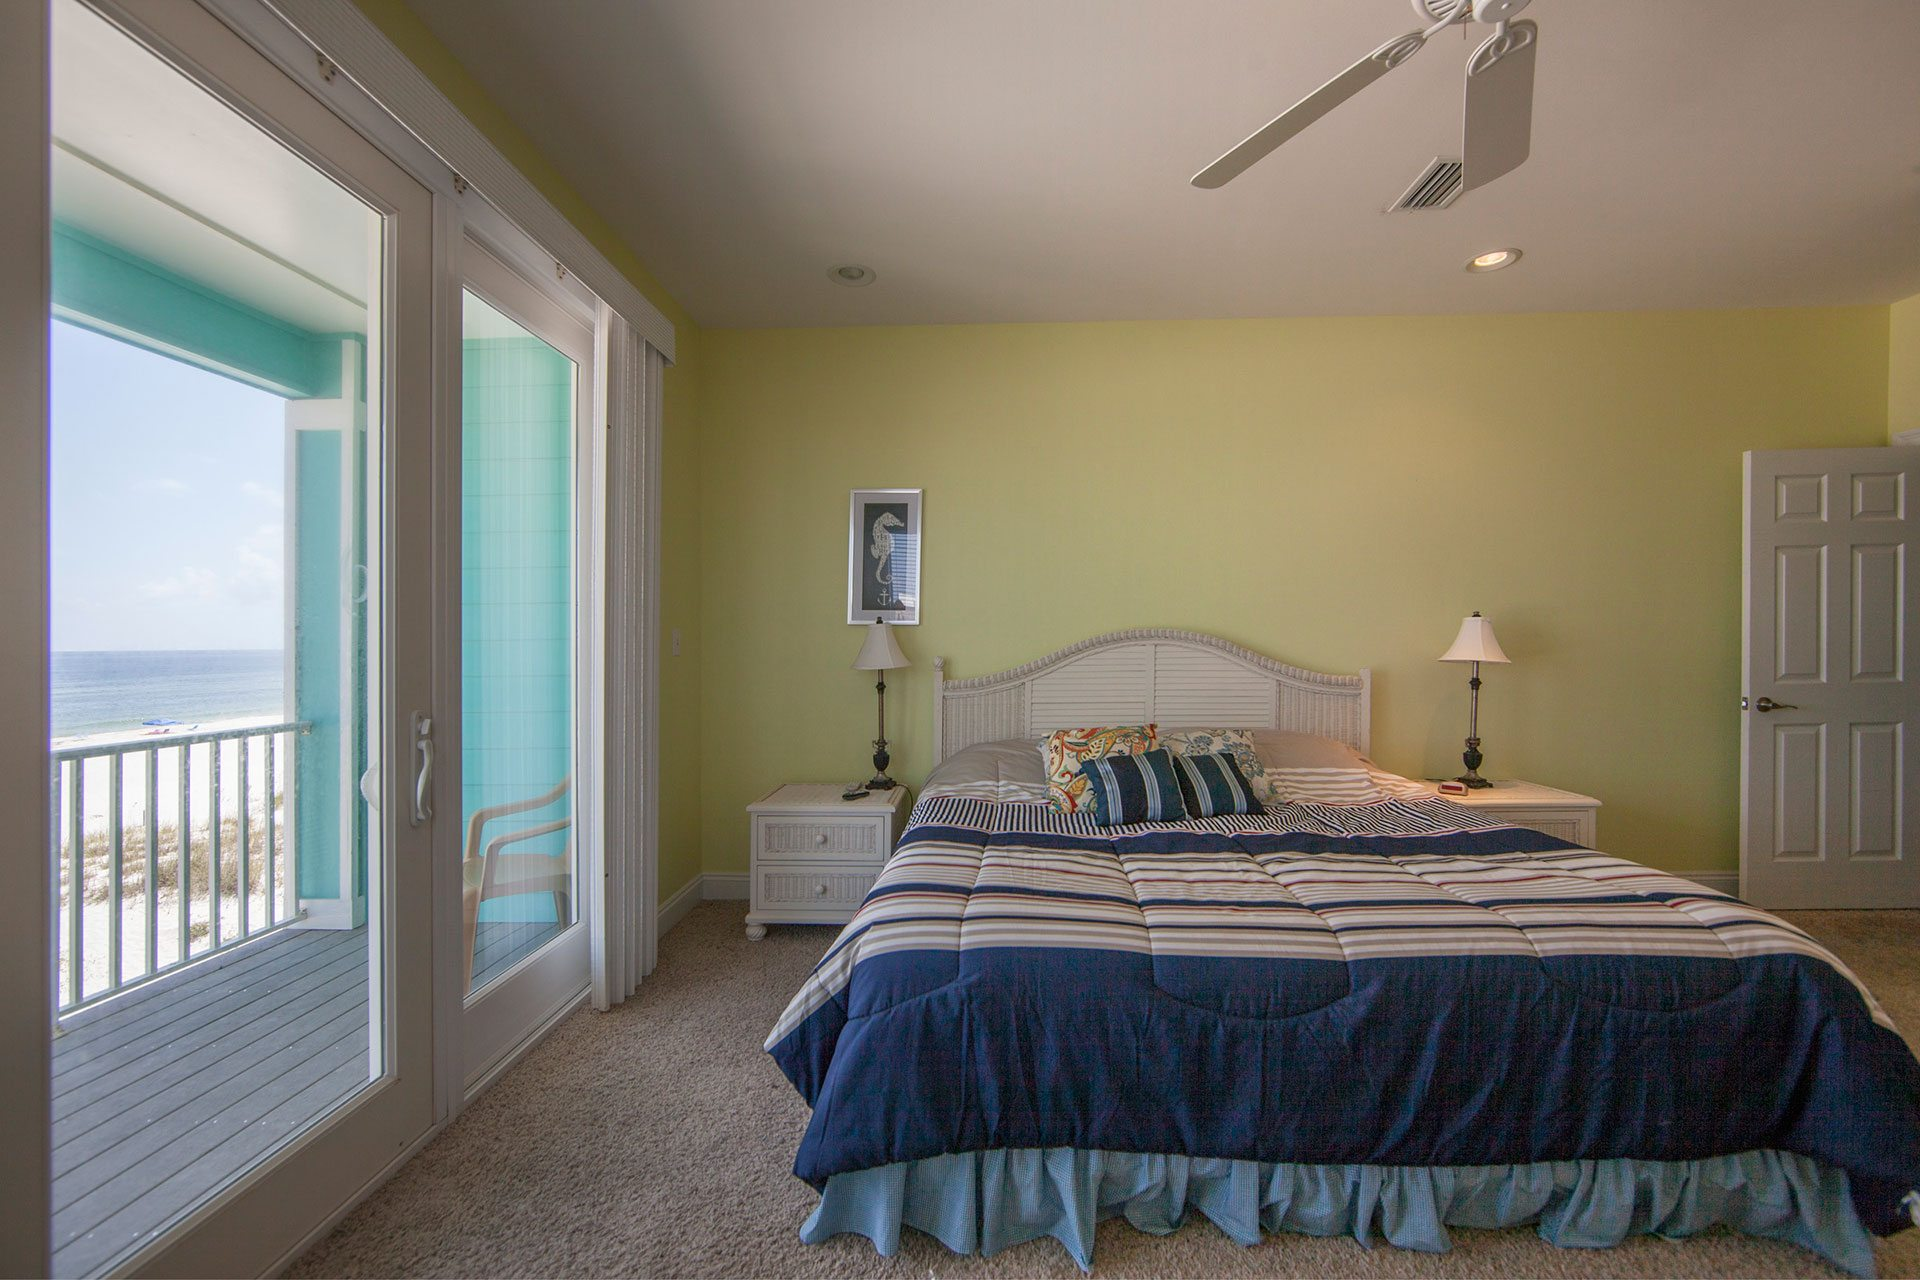 Wits-End-E-2nd-floor-gulfside-bedroom2